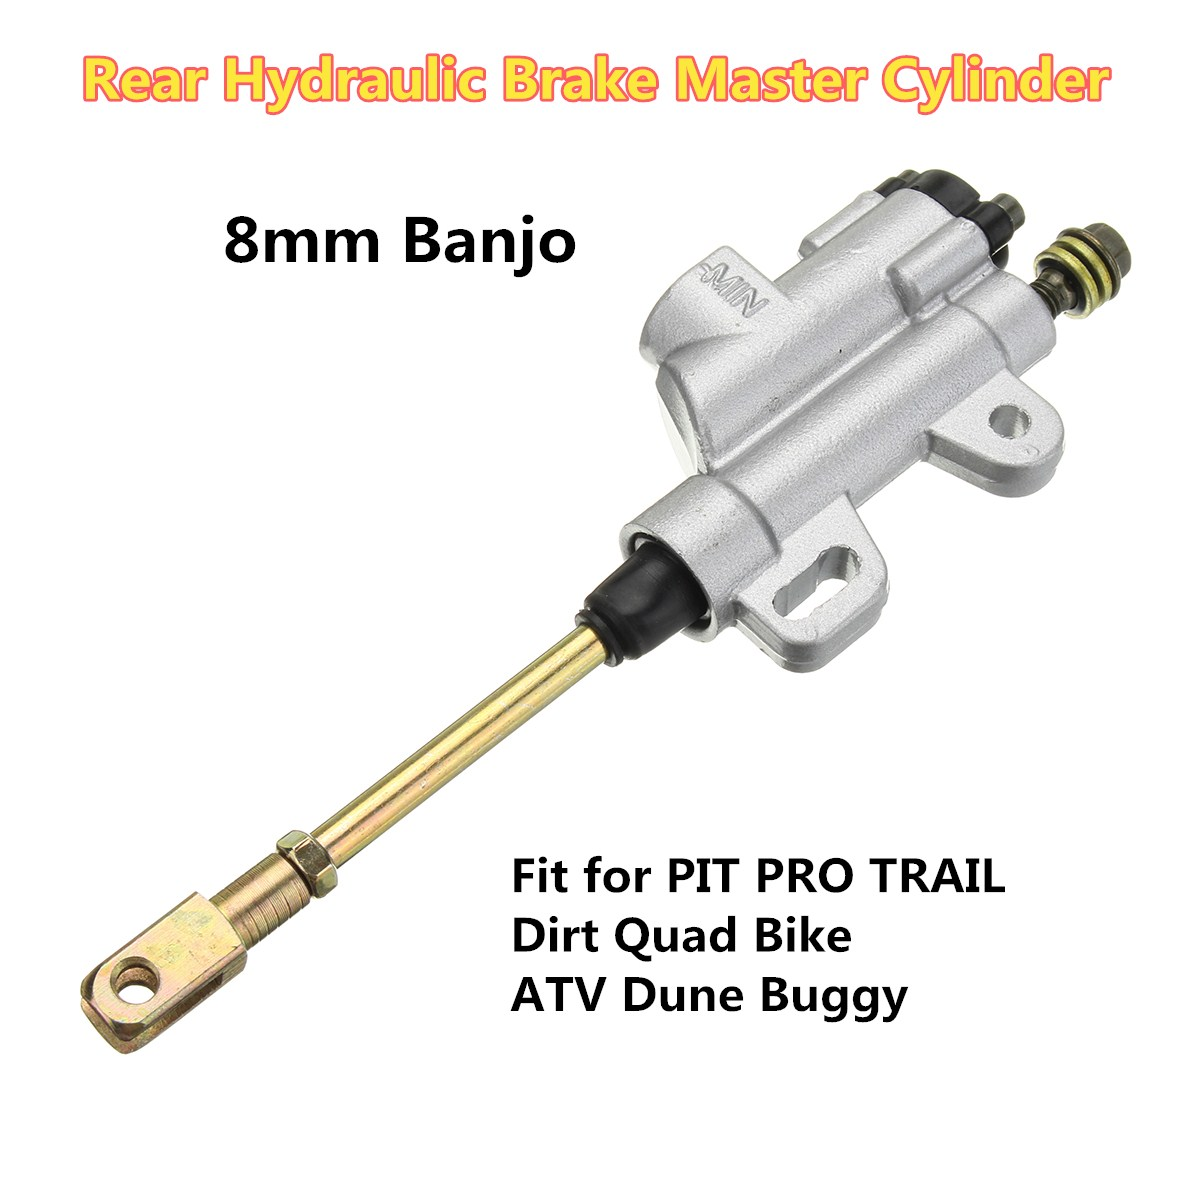 8mm Banjo Bolt Silver Rear Hydraulic Brake Master Cylinder Fit PIT Dirt Bike ATV